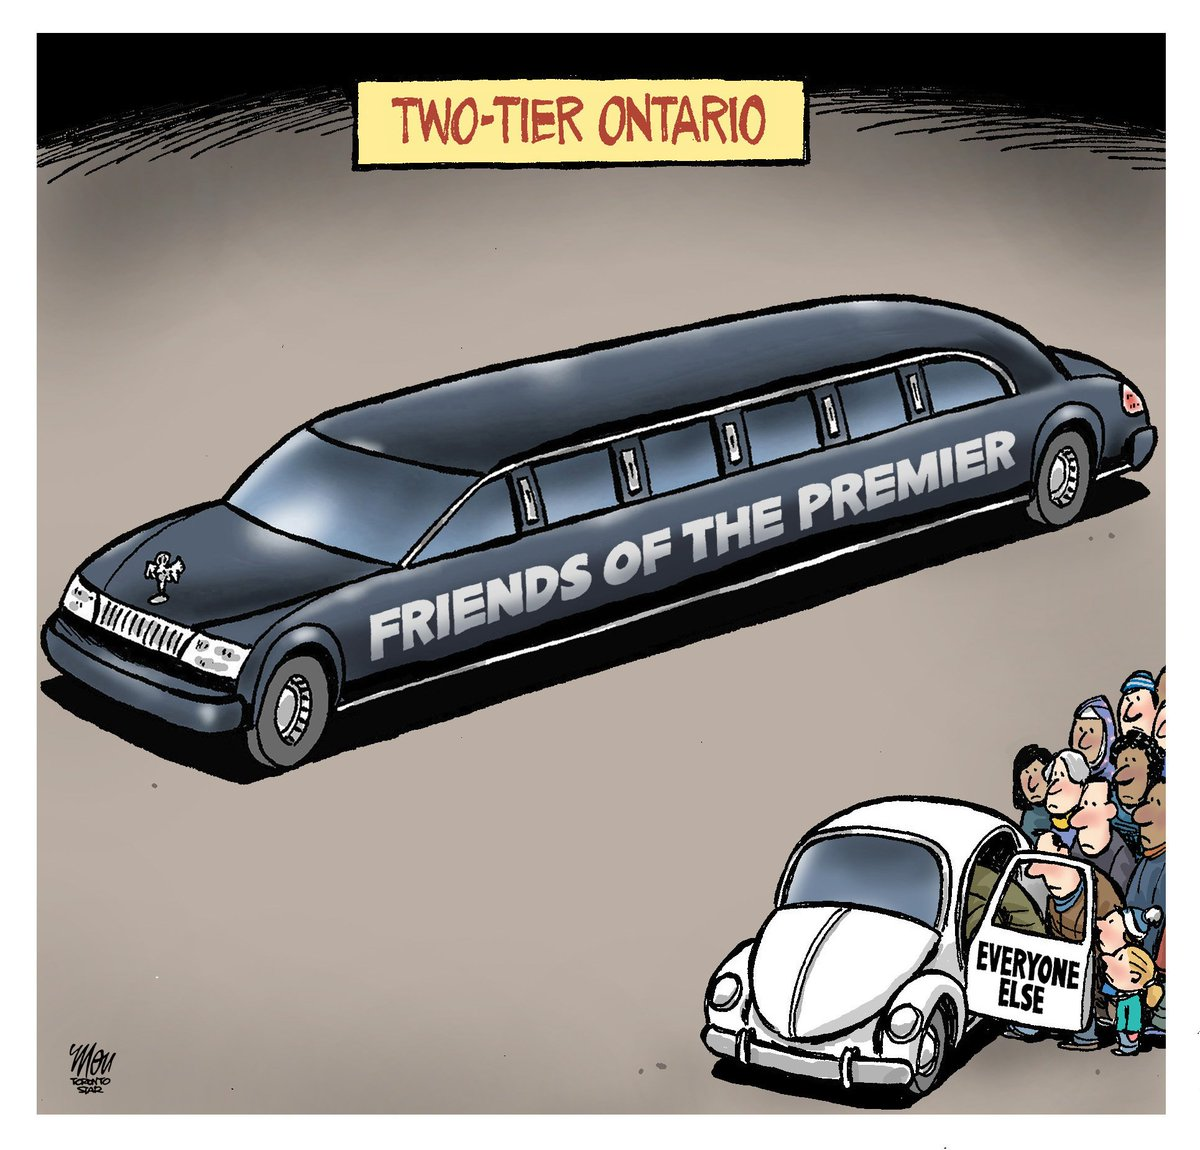 Here's Wednesday's #DougFord cartoon in @TorontoStar #ONPoli